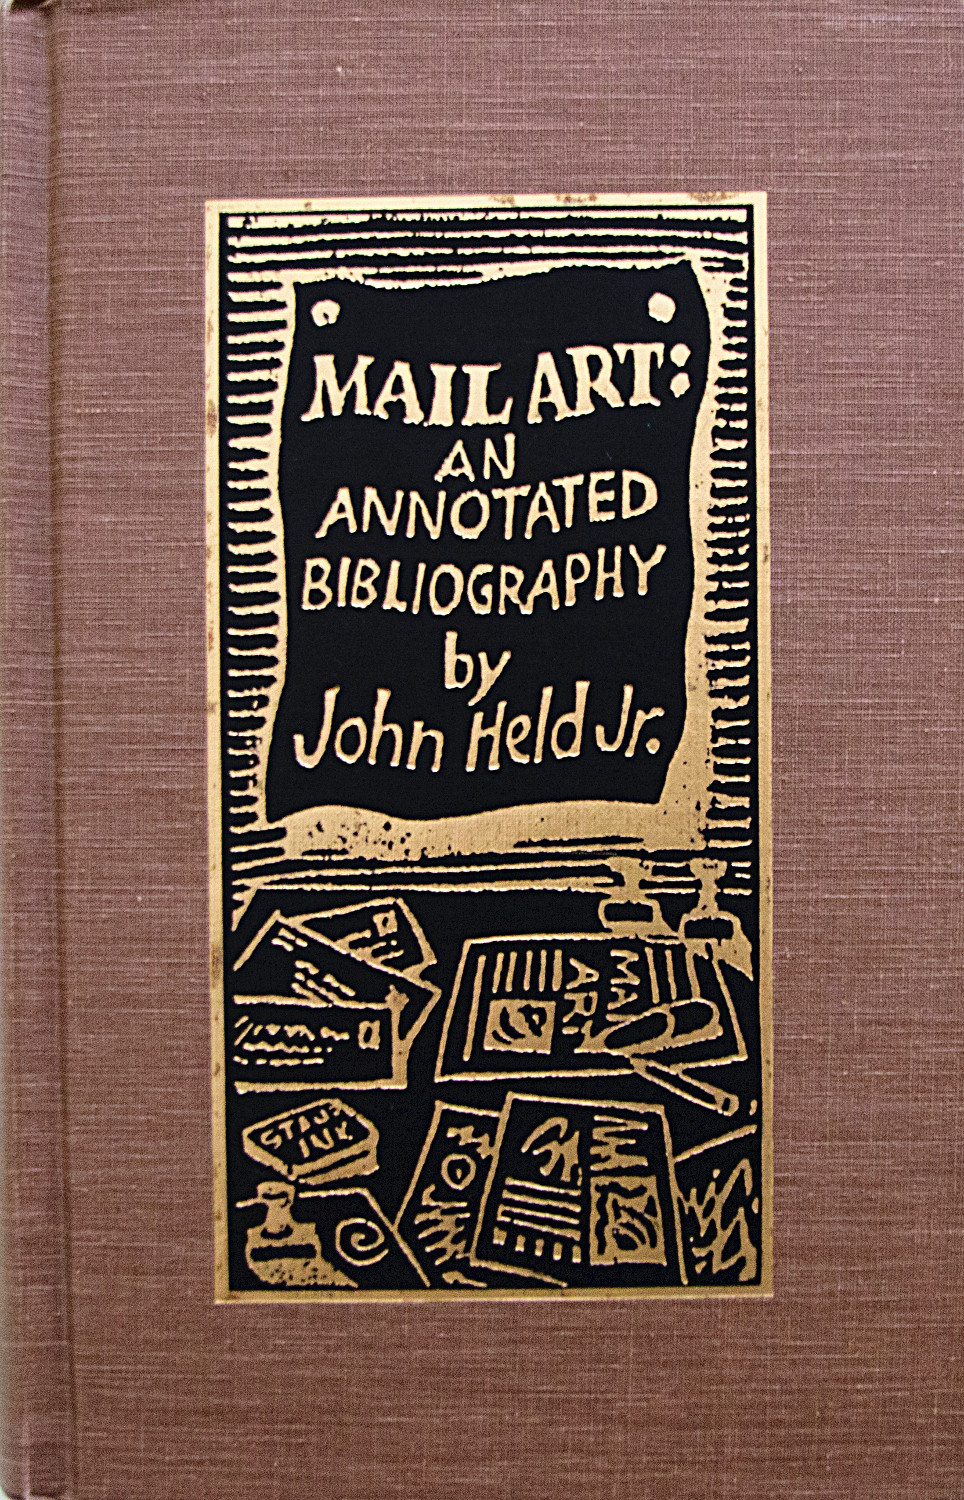 Mail Art: An Annotated Bibliography by John Held Jr.